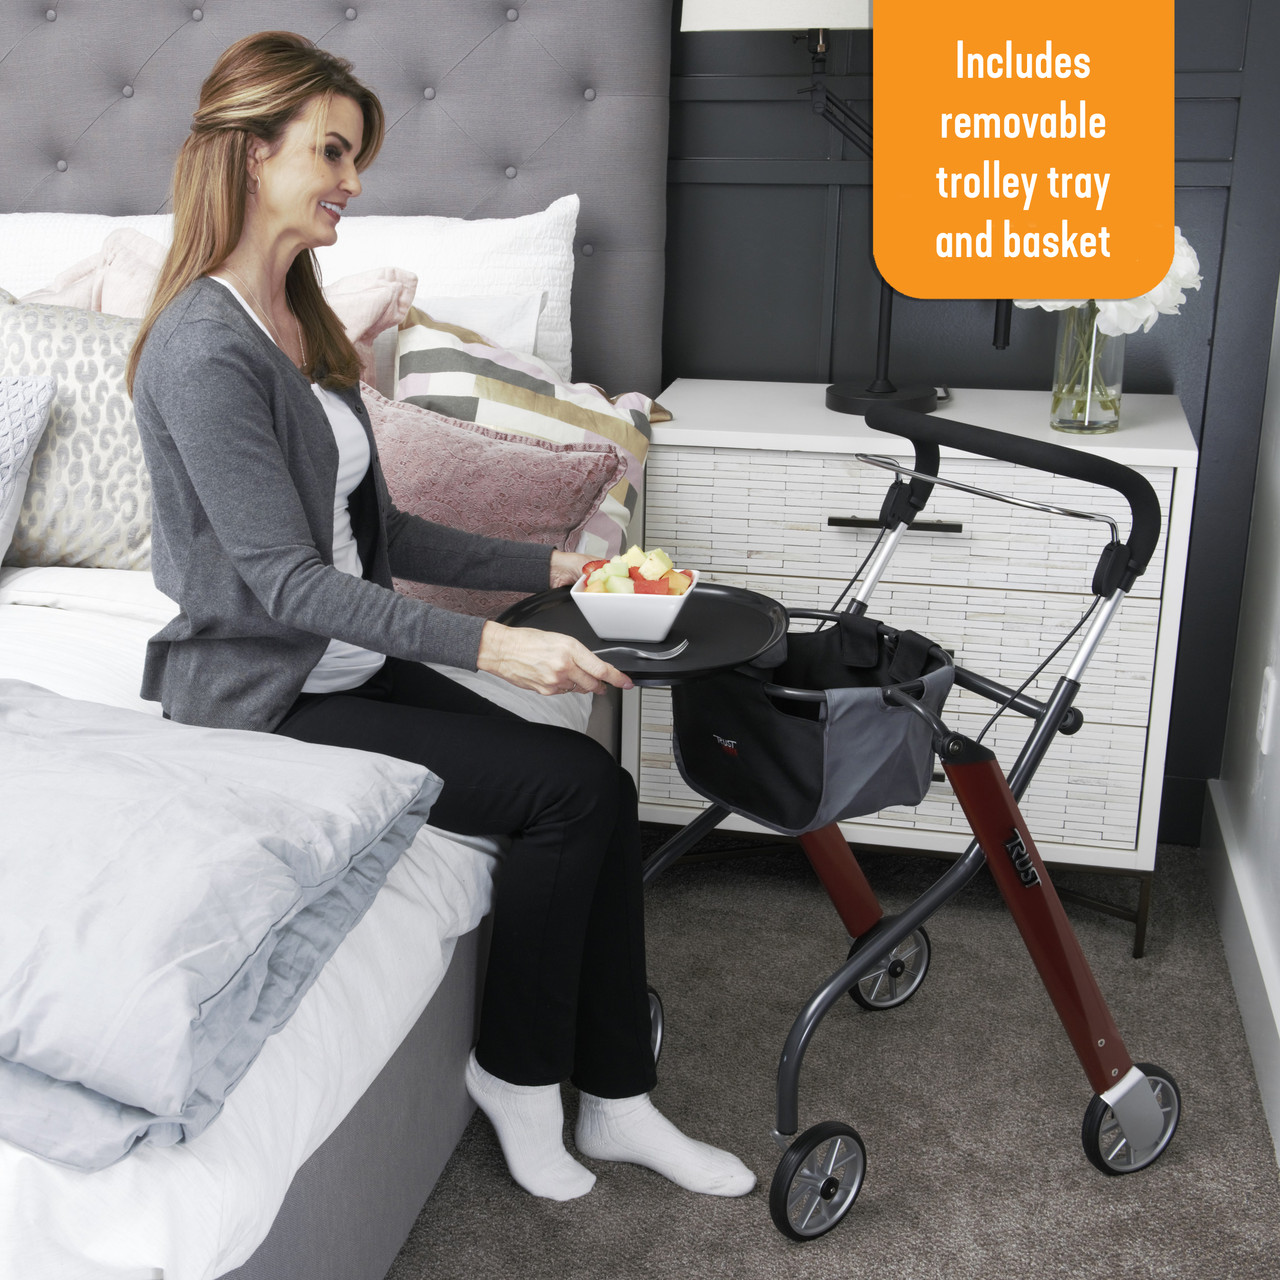 Let's Go Indoor Rollator includes a removable tray and basket